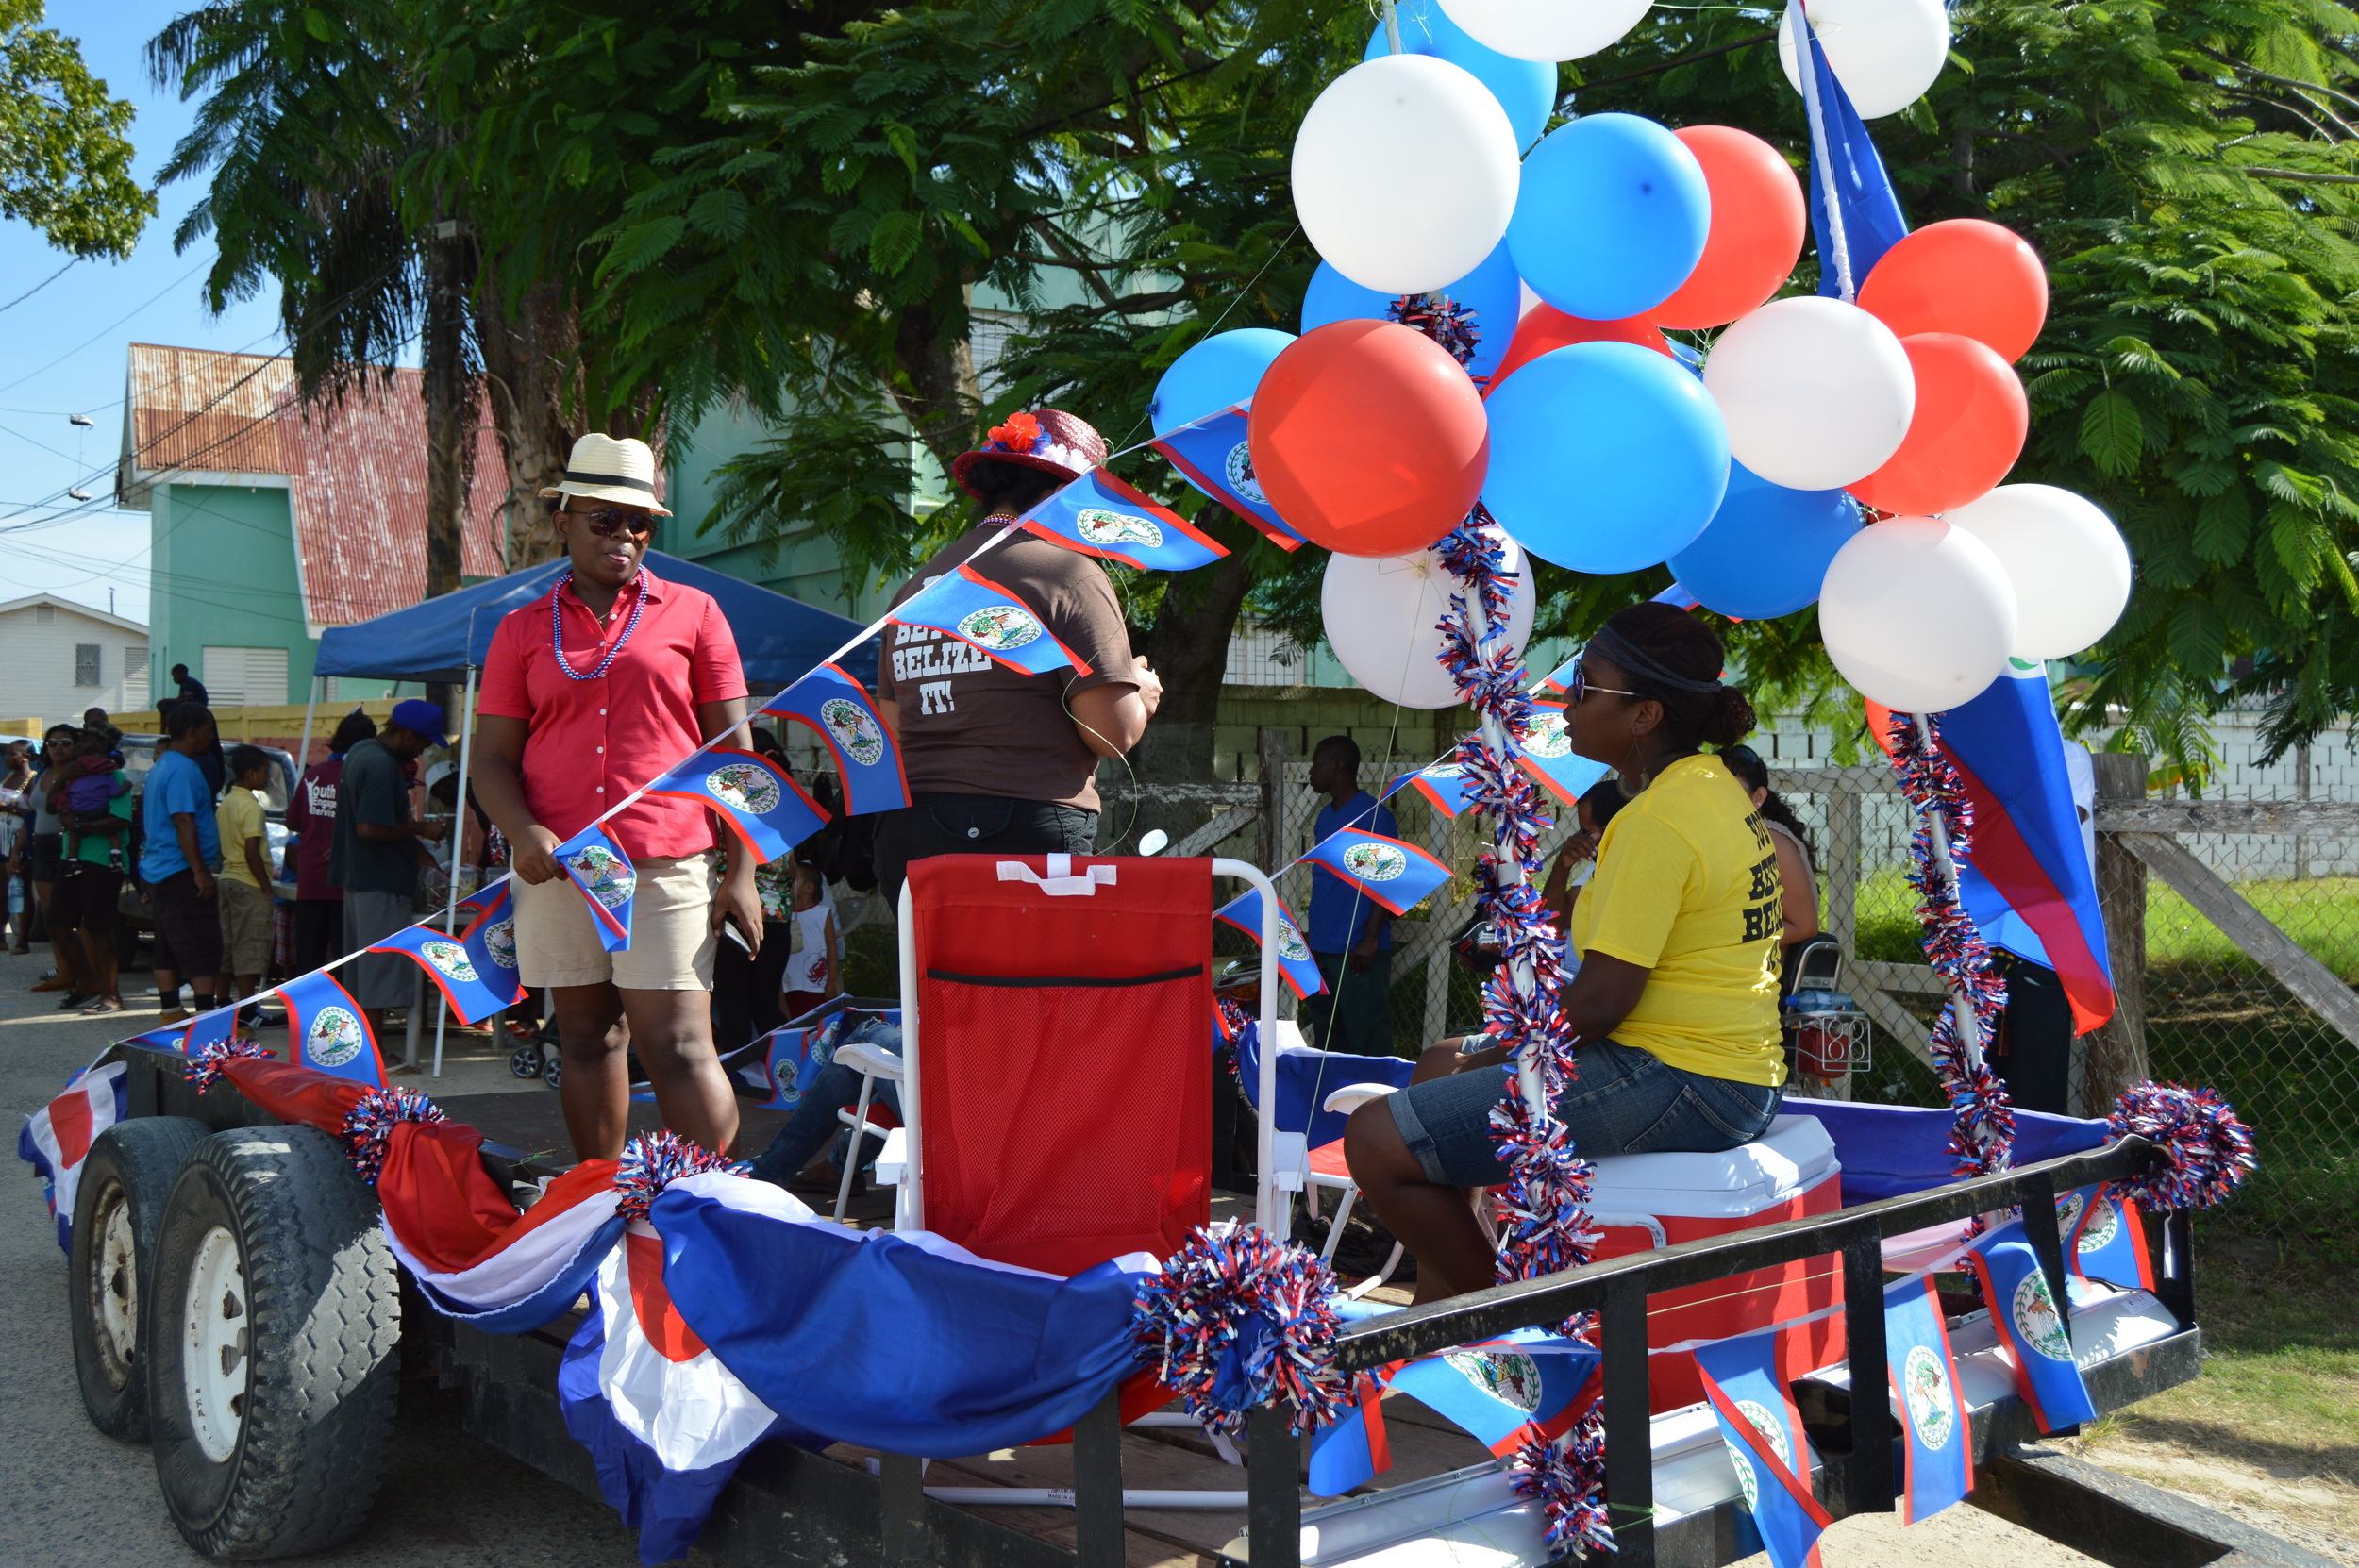 PADF staff ride the parade float